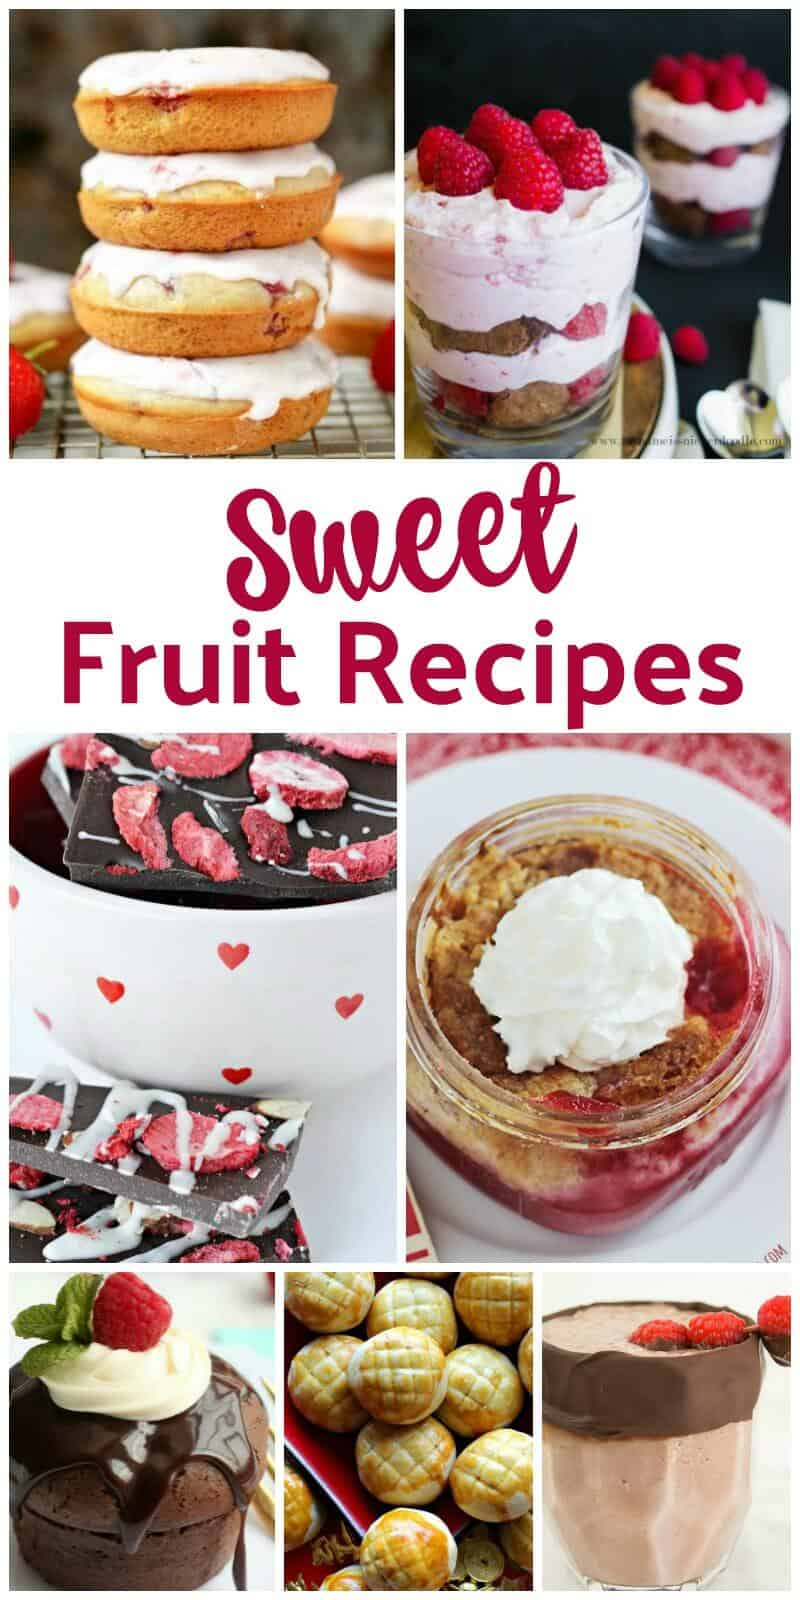 Sweet Fruit Recipes - Delicious Dishes